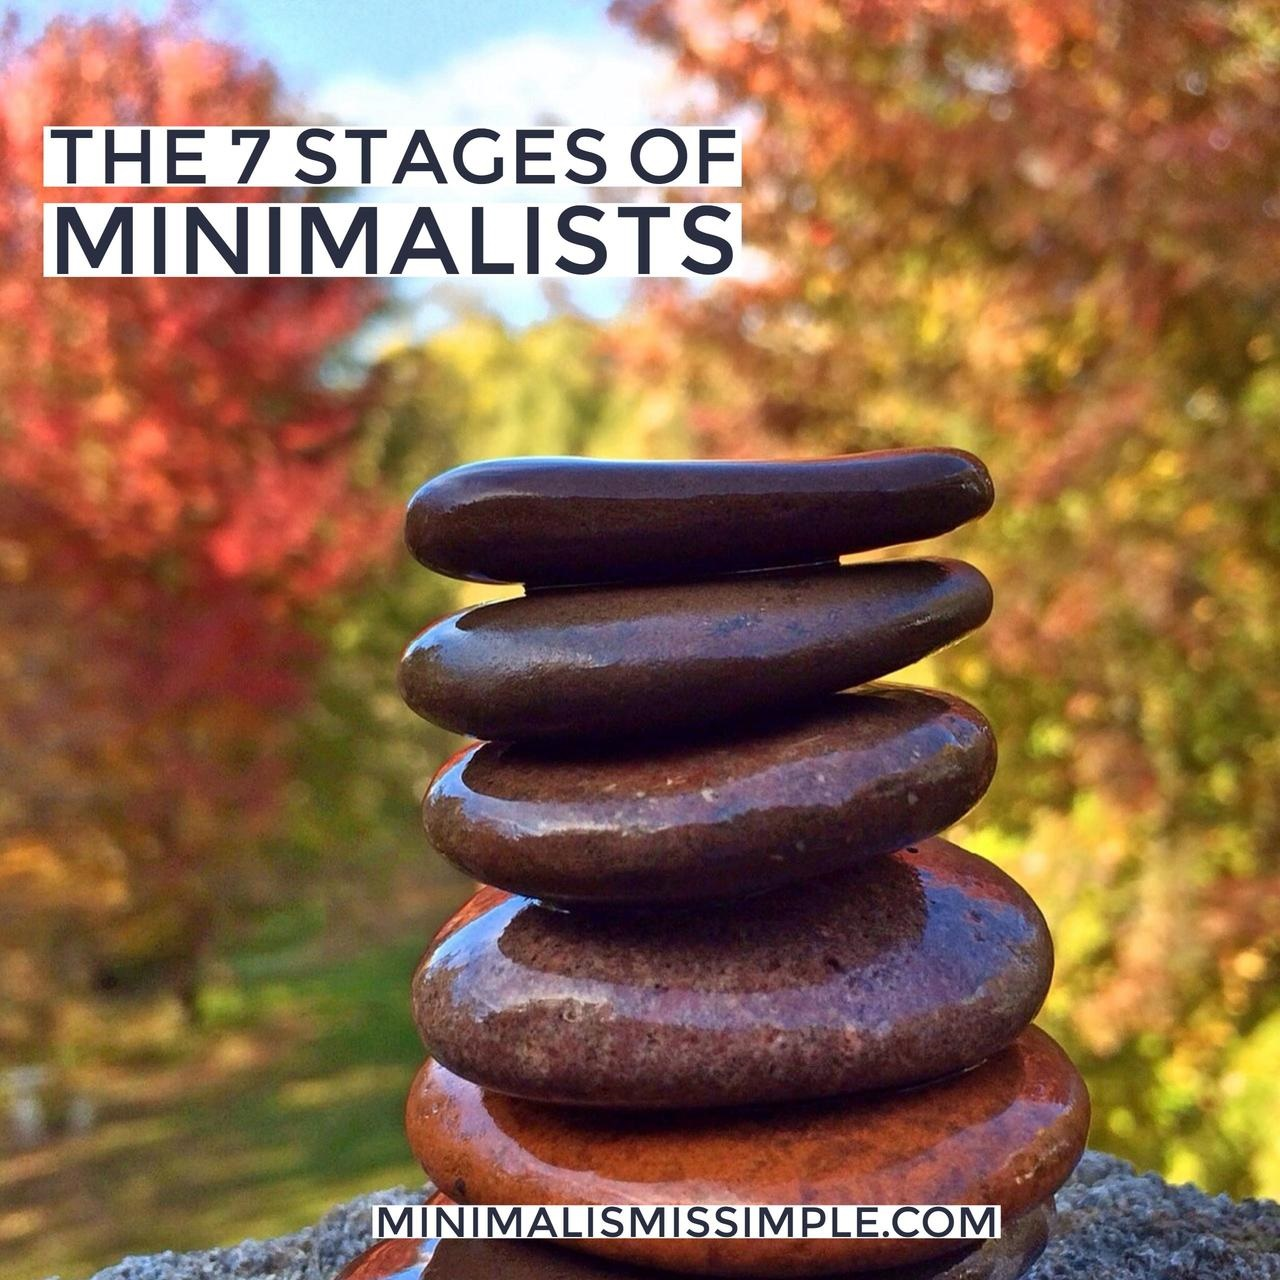 7 levels of minimalists minimalismissimple.com